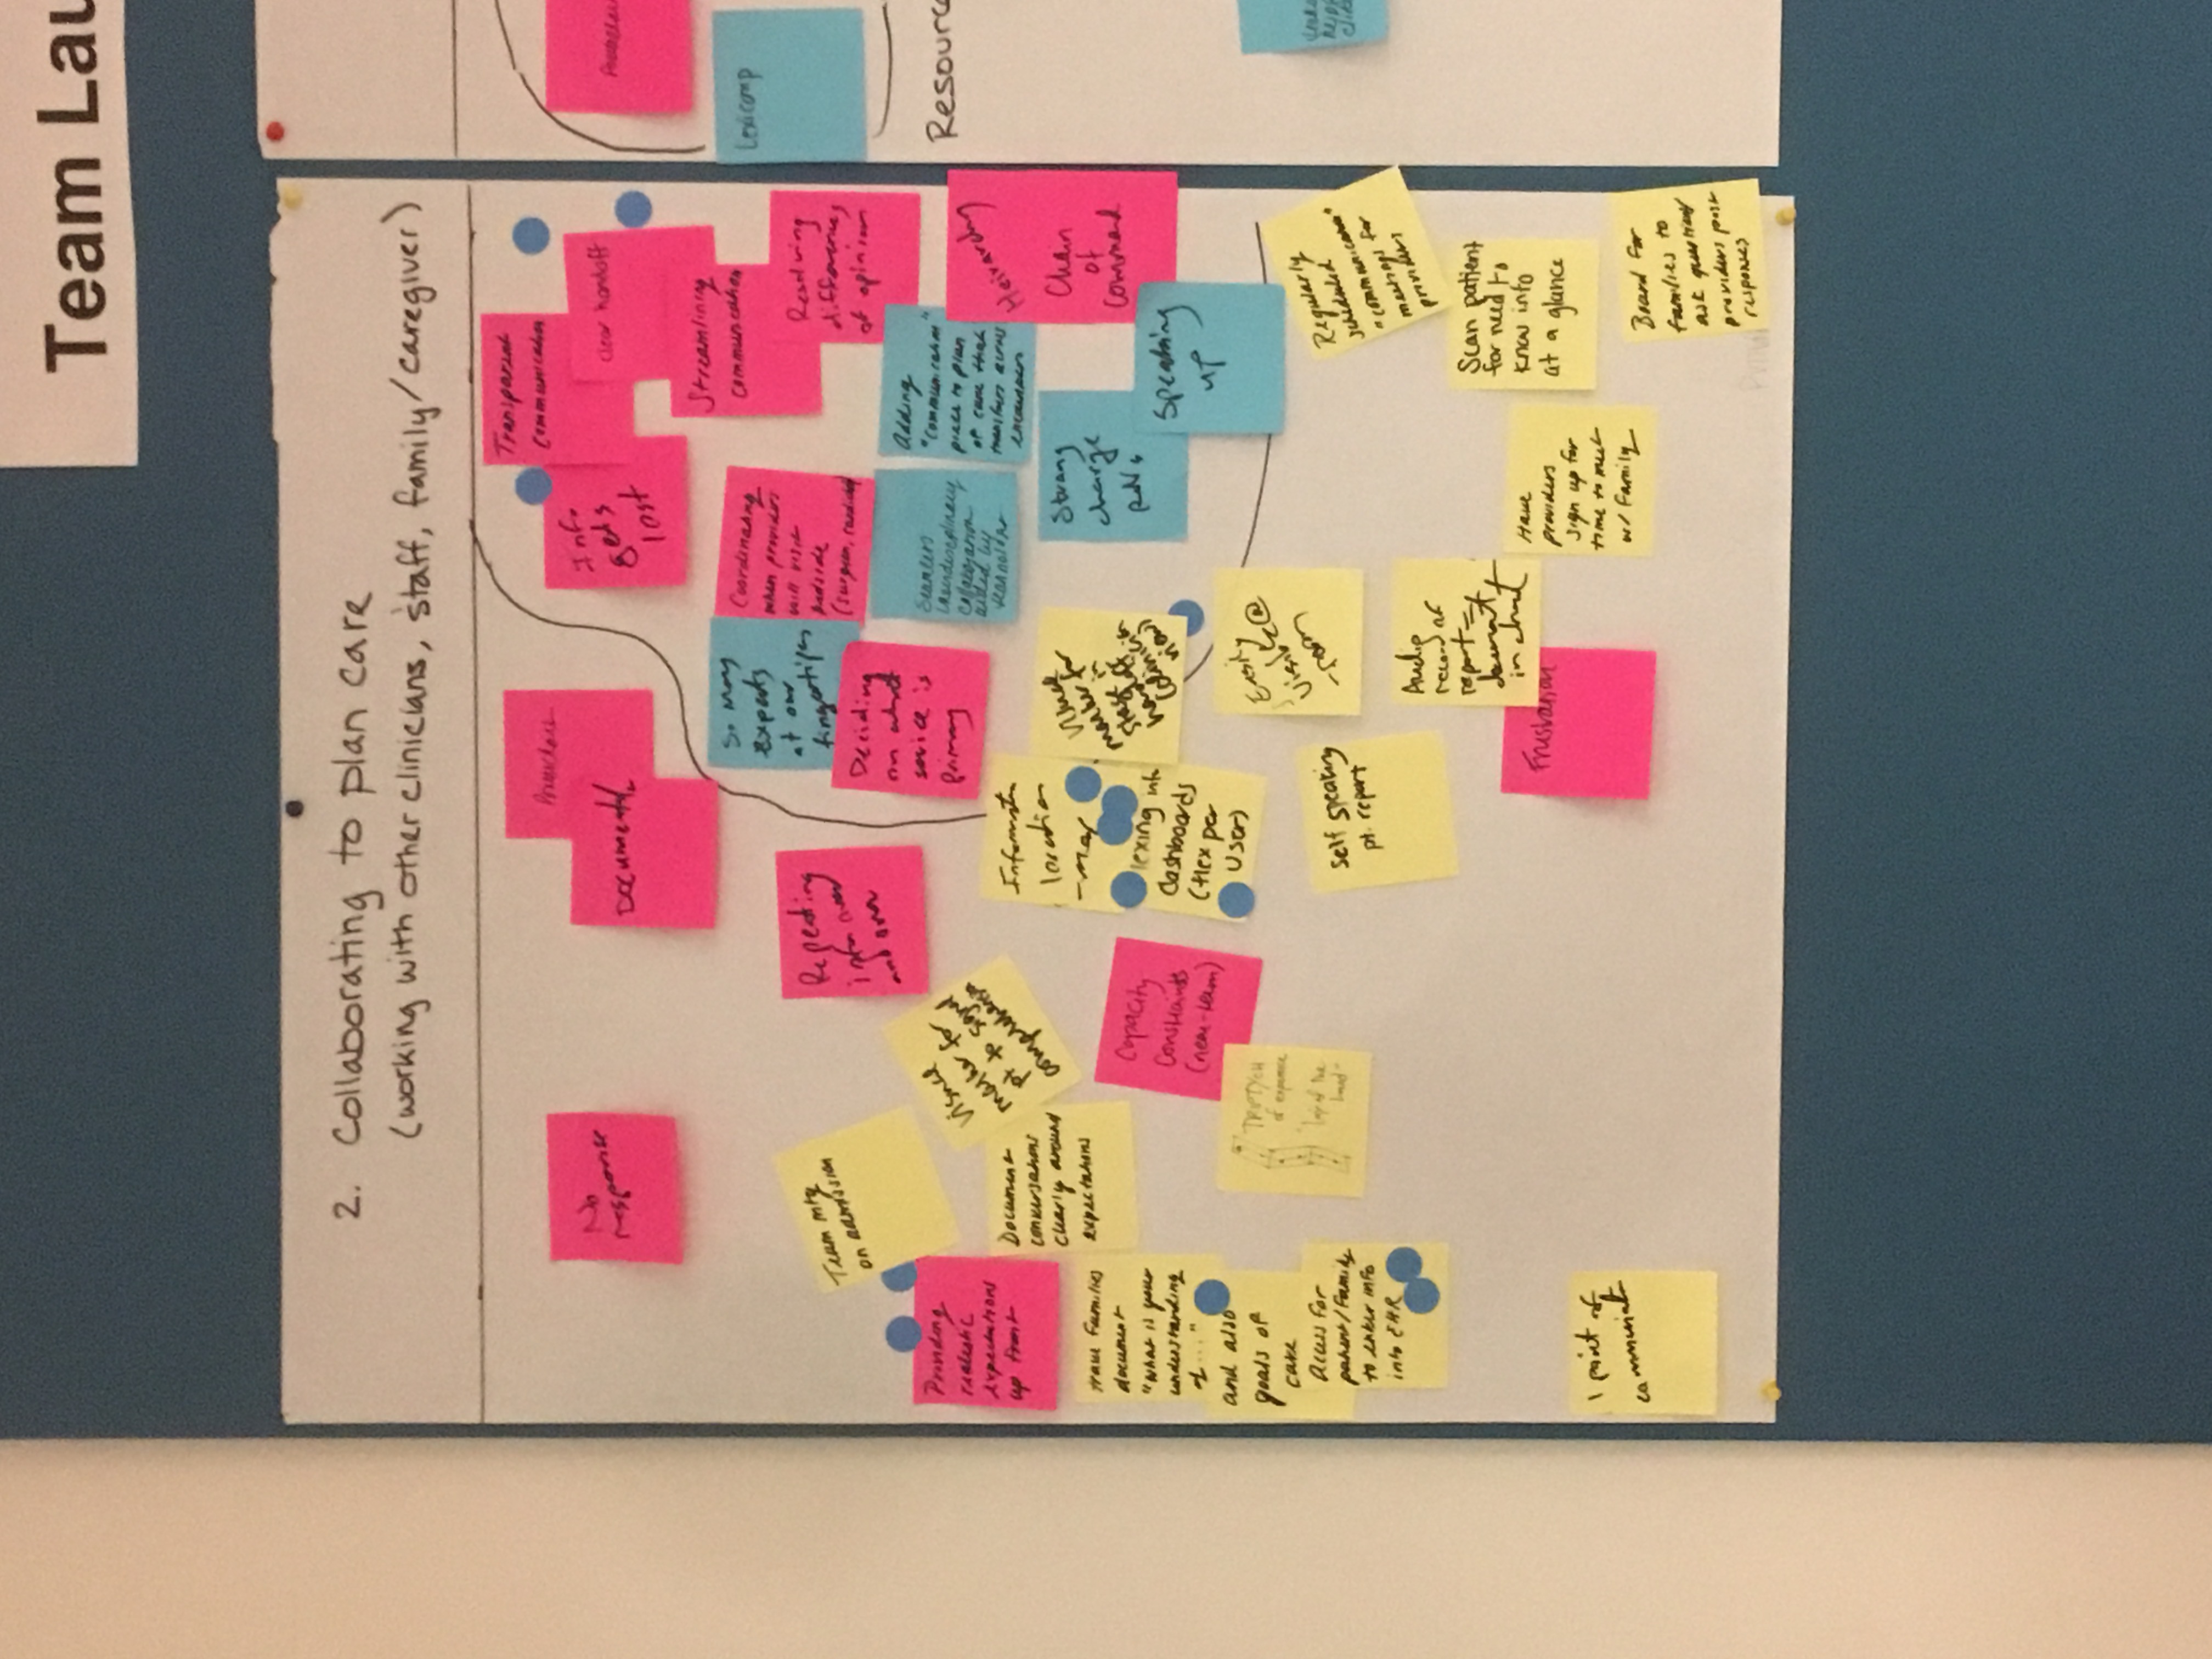 Wall covered in post-its related to collaborating with other care team members